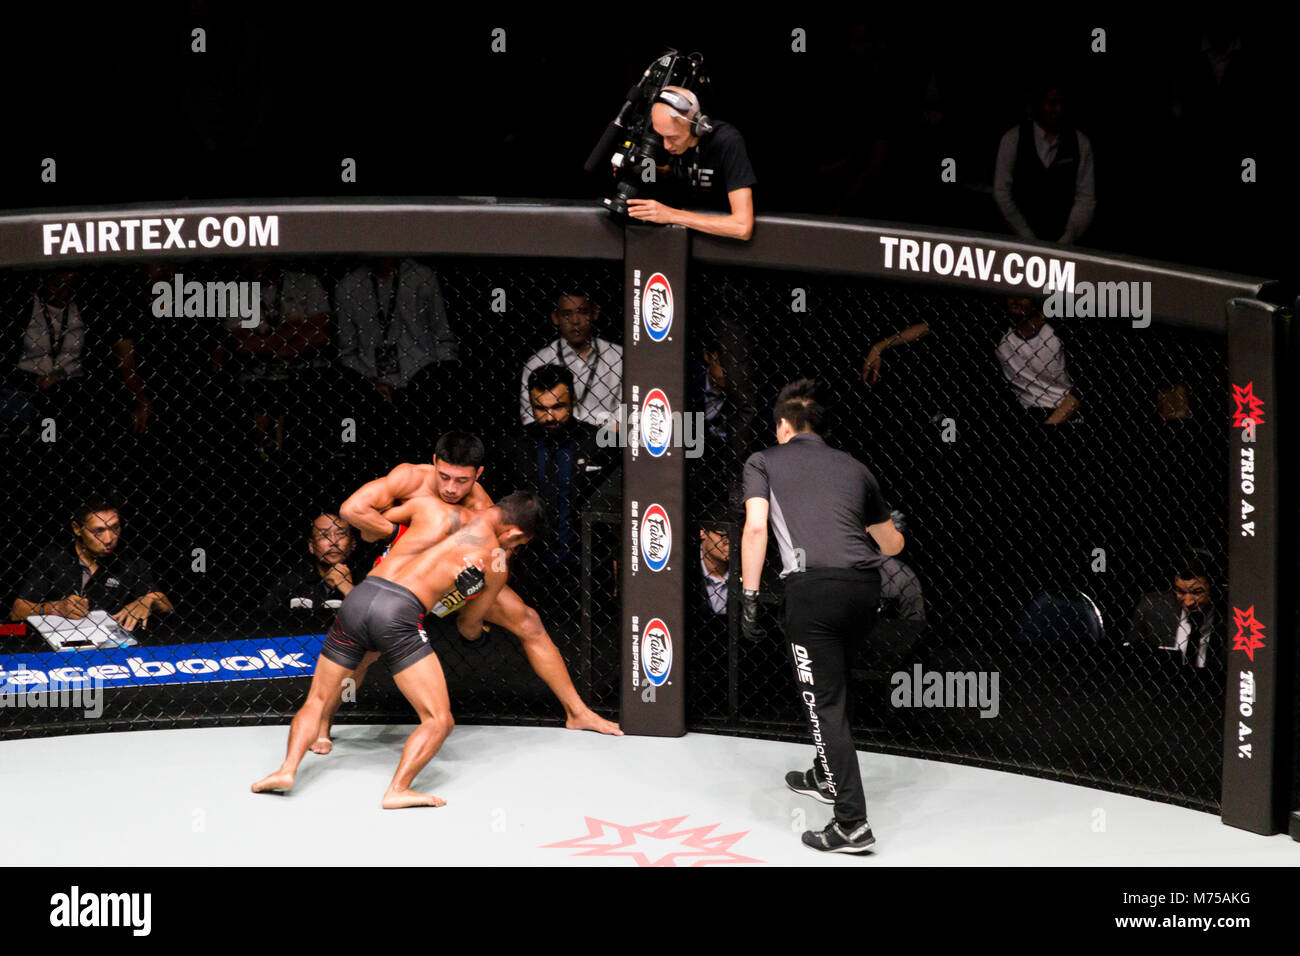 Bangkok, Thailand. - January 17, 2018 : unidentified boxers are fighting in cage ring extreme sport mixed martial arts (MMA) match at One Championship Stock Photo